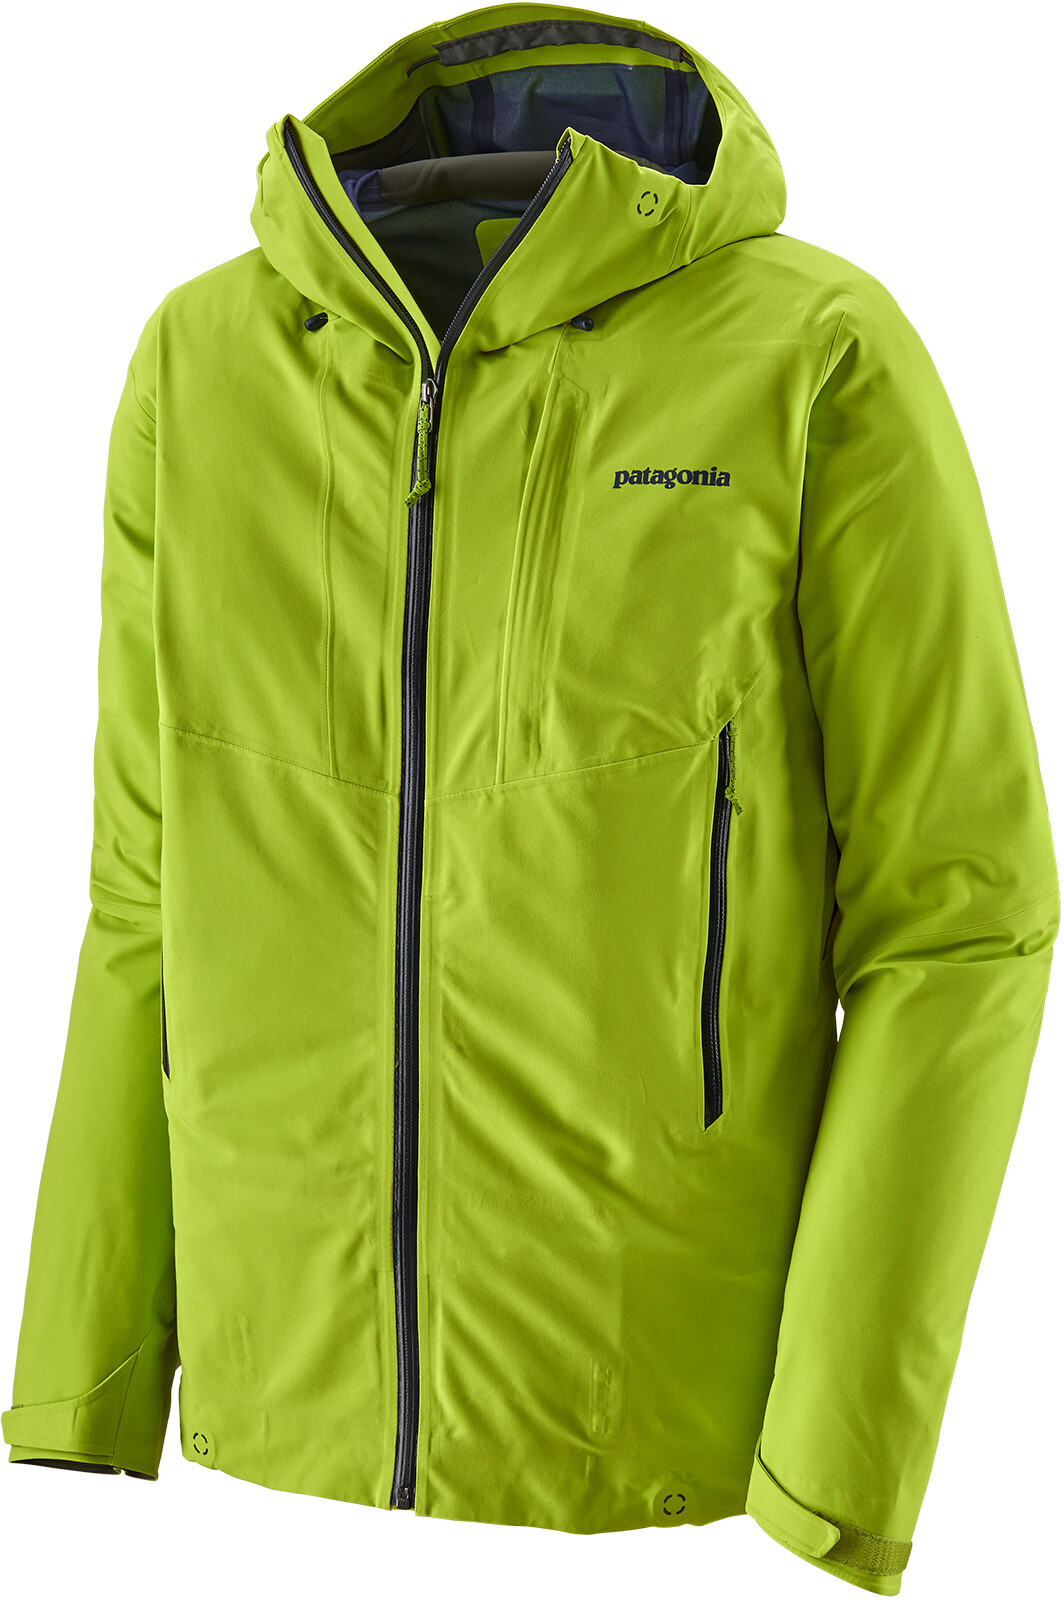 Patagonia Shell Yeah! stort sortiment hos |